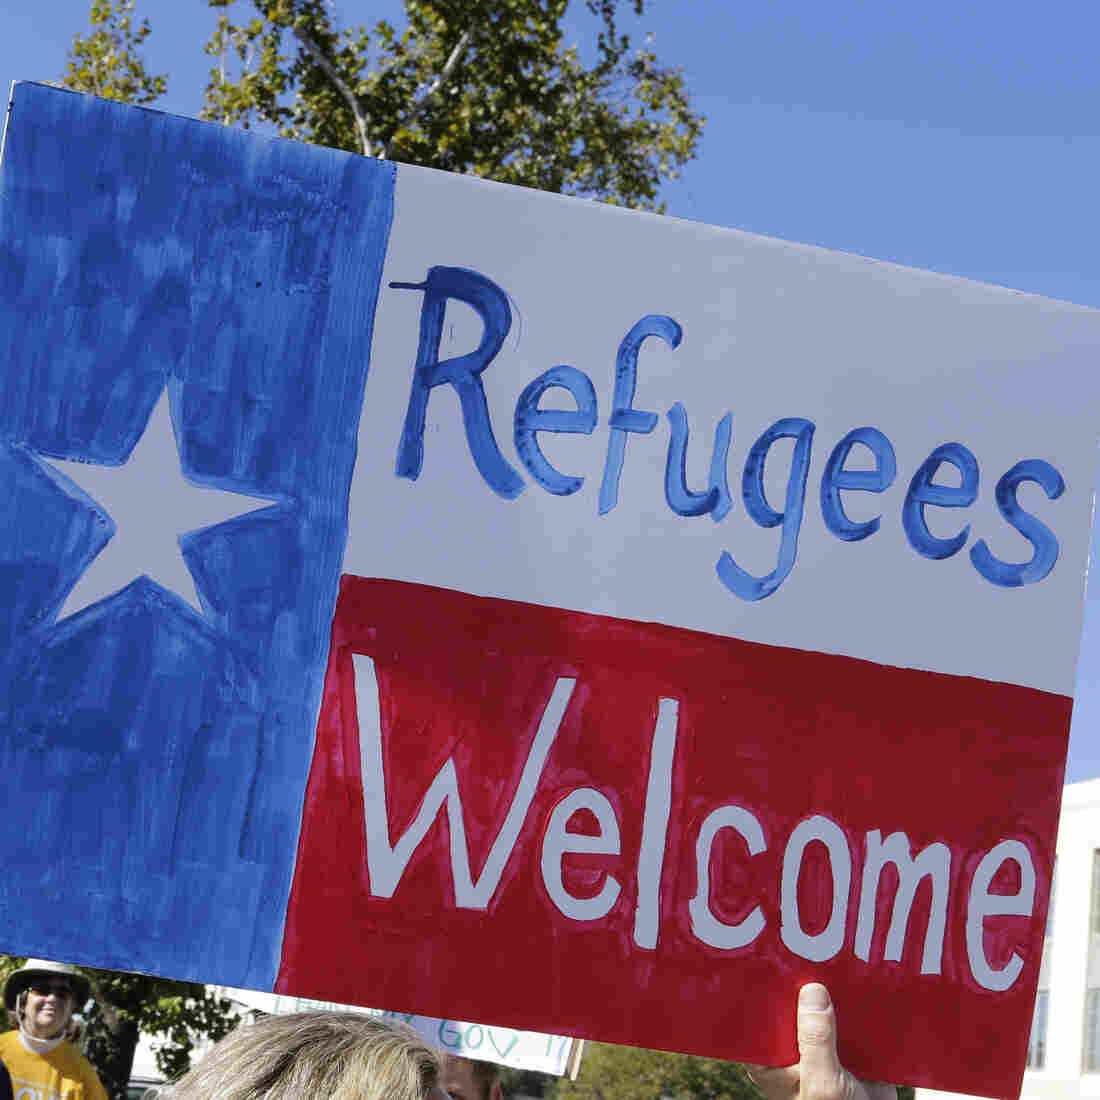 Members of The Syrian People Solidarity Group protest on Nov. 22 in Austin, Texas, after Texas Gov. Greg Abbott announced he'd refuse to allow Syrian refugees in the state. Texas and the U.S. government are now clashing in court over the issue.